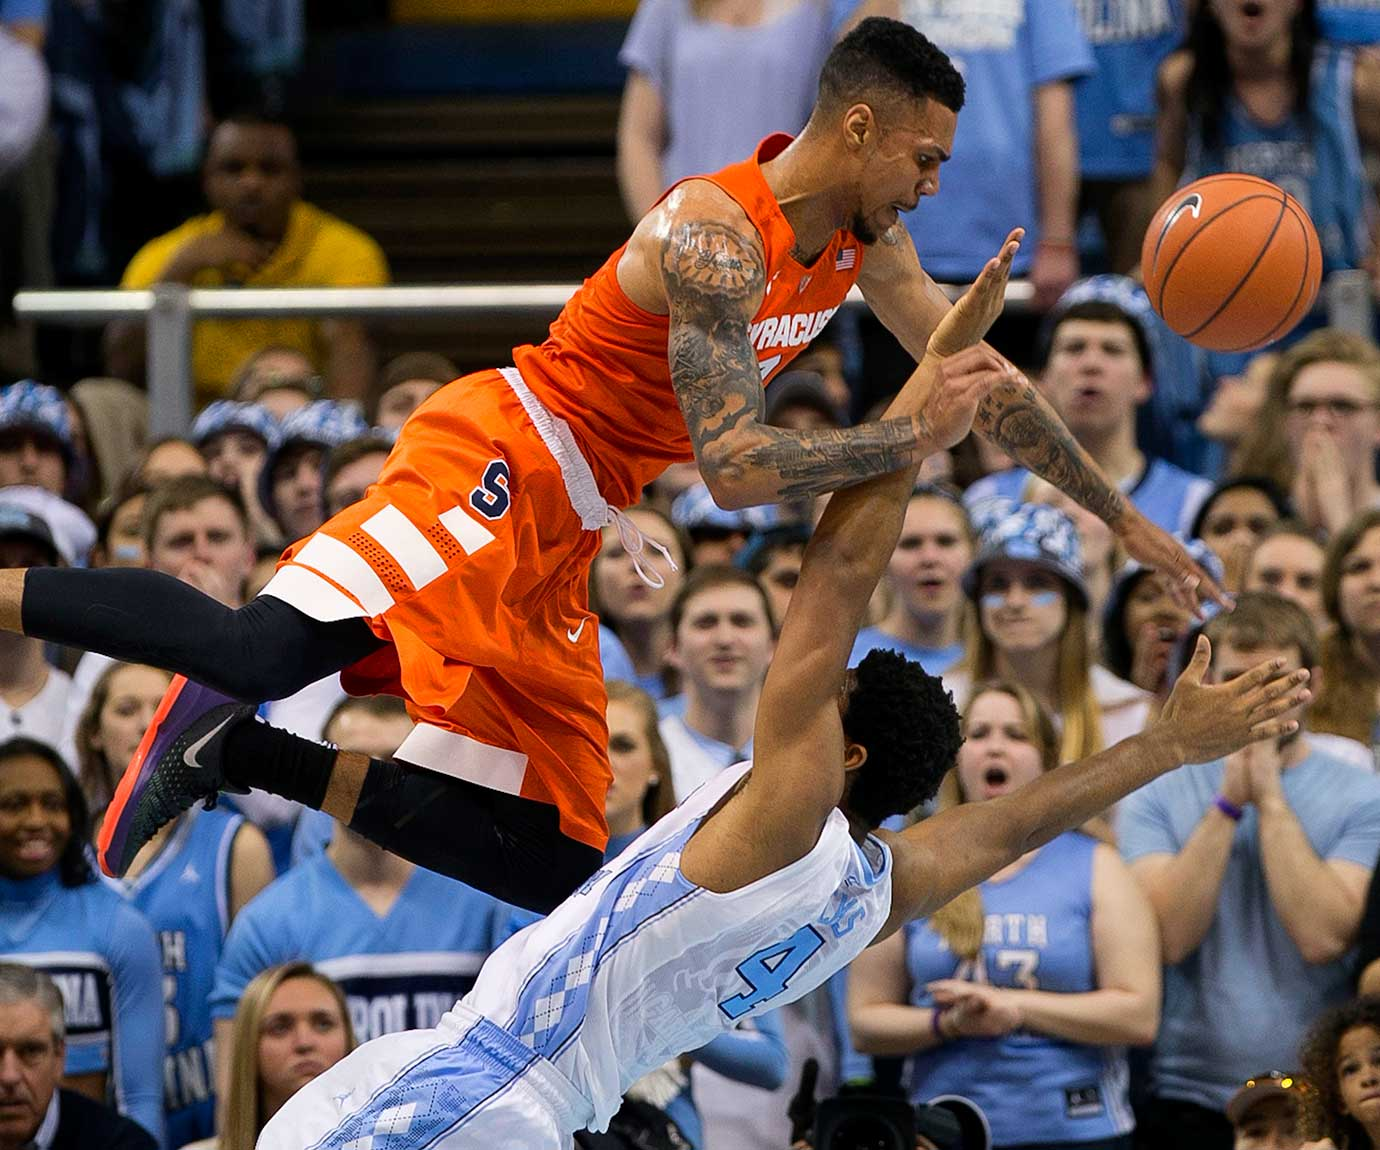 Syracuse's Michael Gbinije collides with North Carolina's Isaiah Hicks.